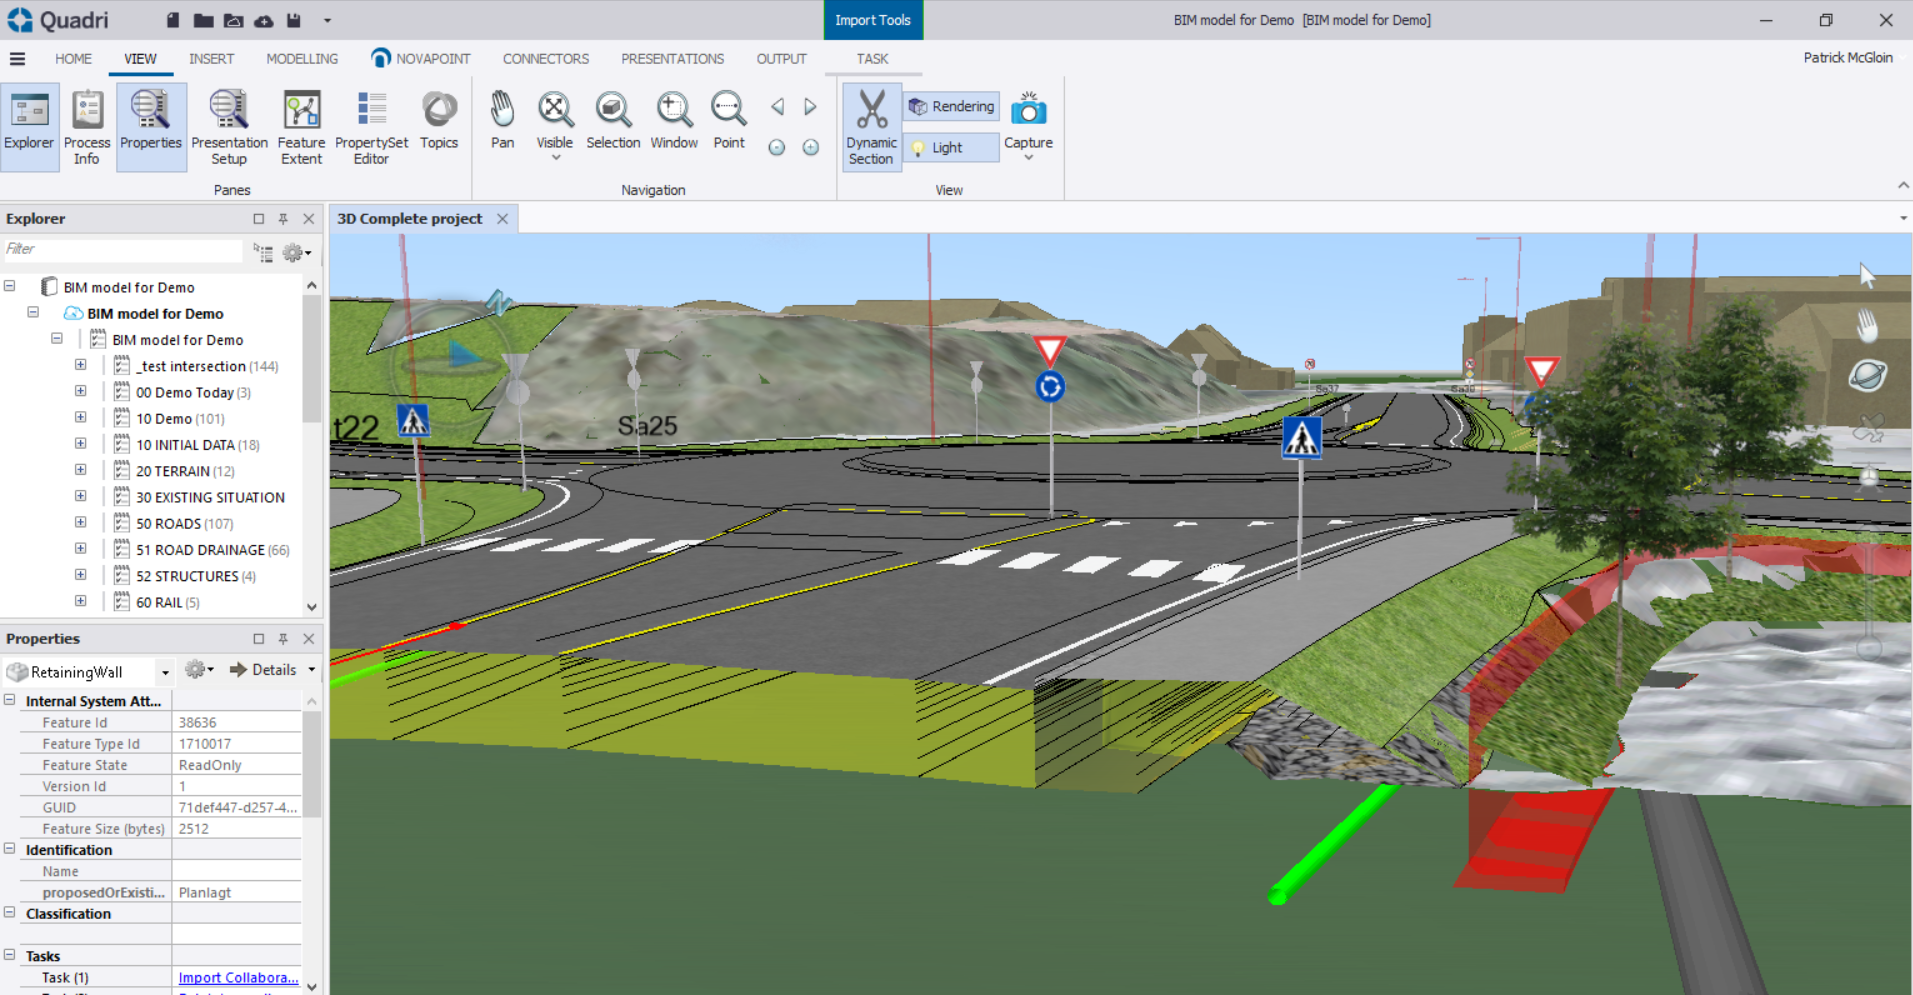 trimble-construction-software-3d-design-modeling-retaining-wall-dashboard